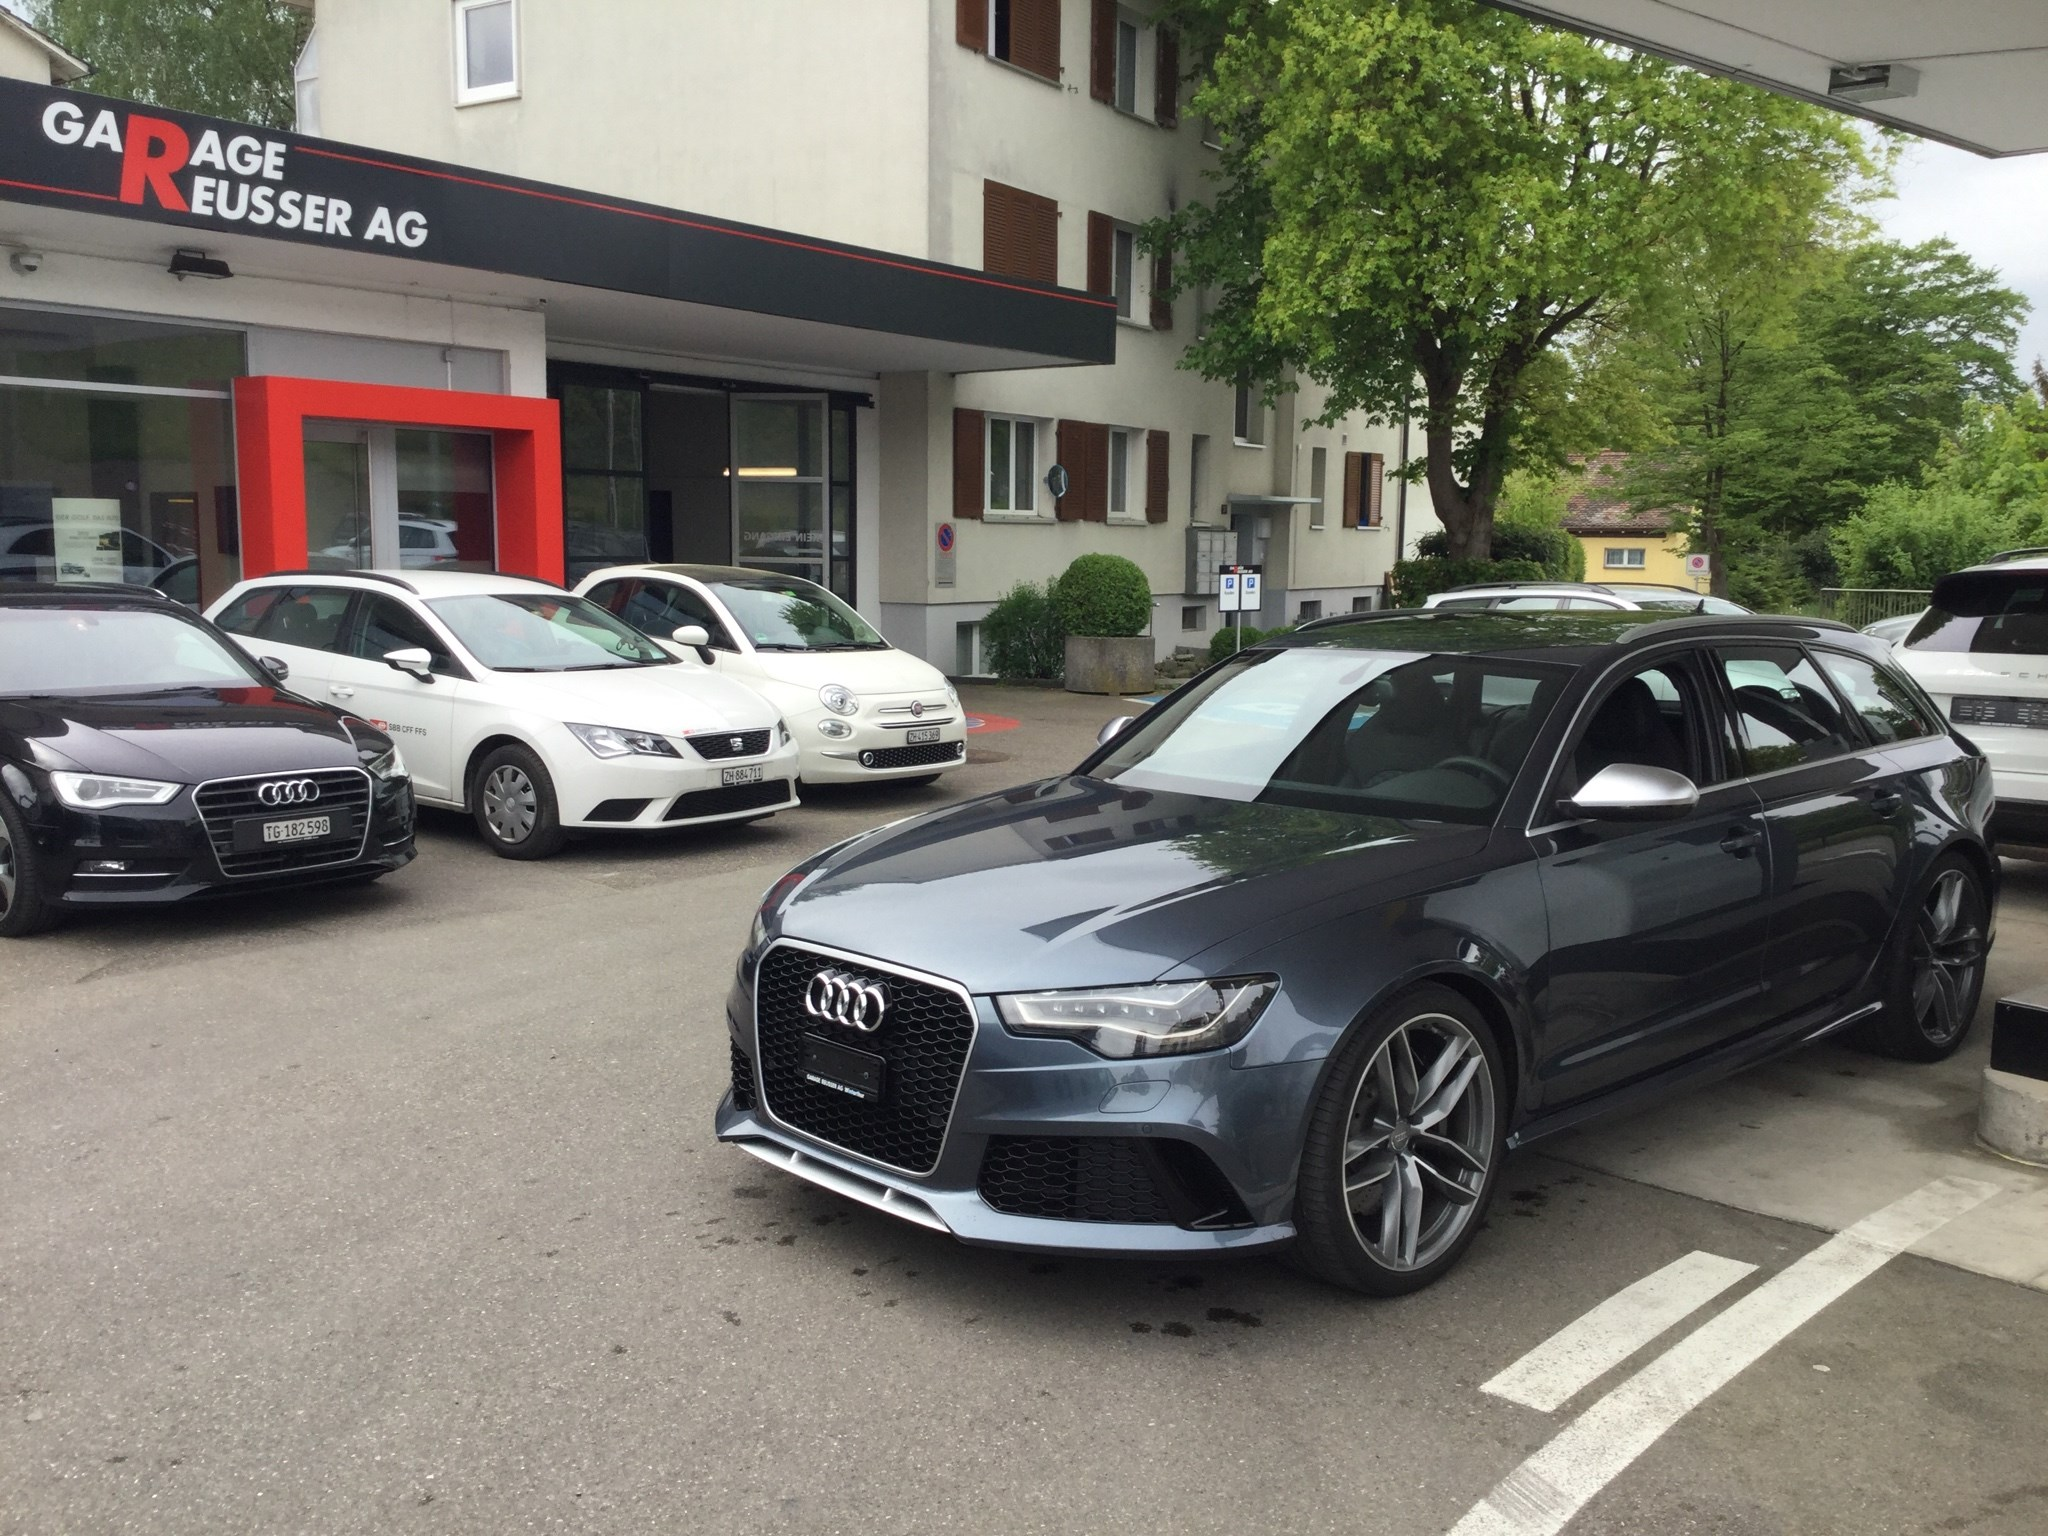 estate Audi S6 / RS6 RS6 AVANT 4.0 TFSI V8 QUATTRO TIPTRONIC 560 PS